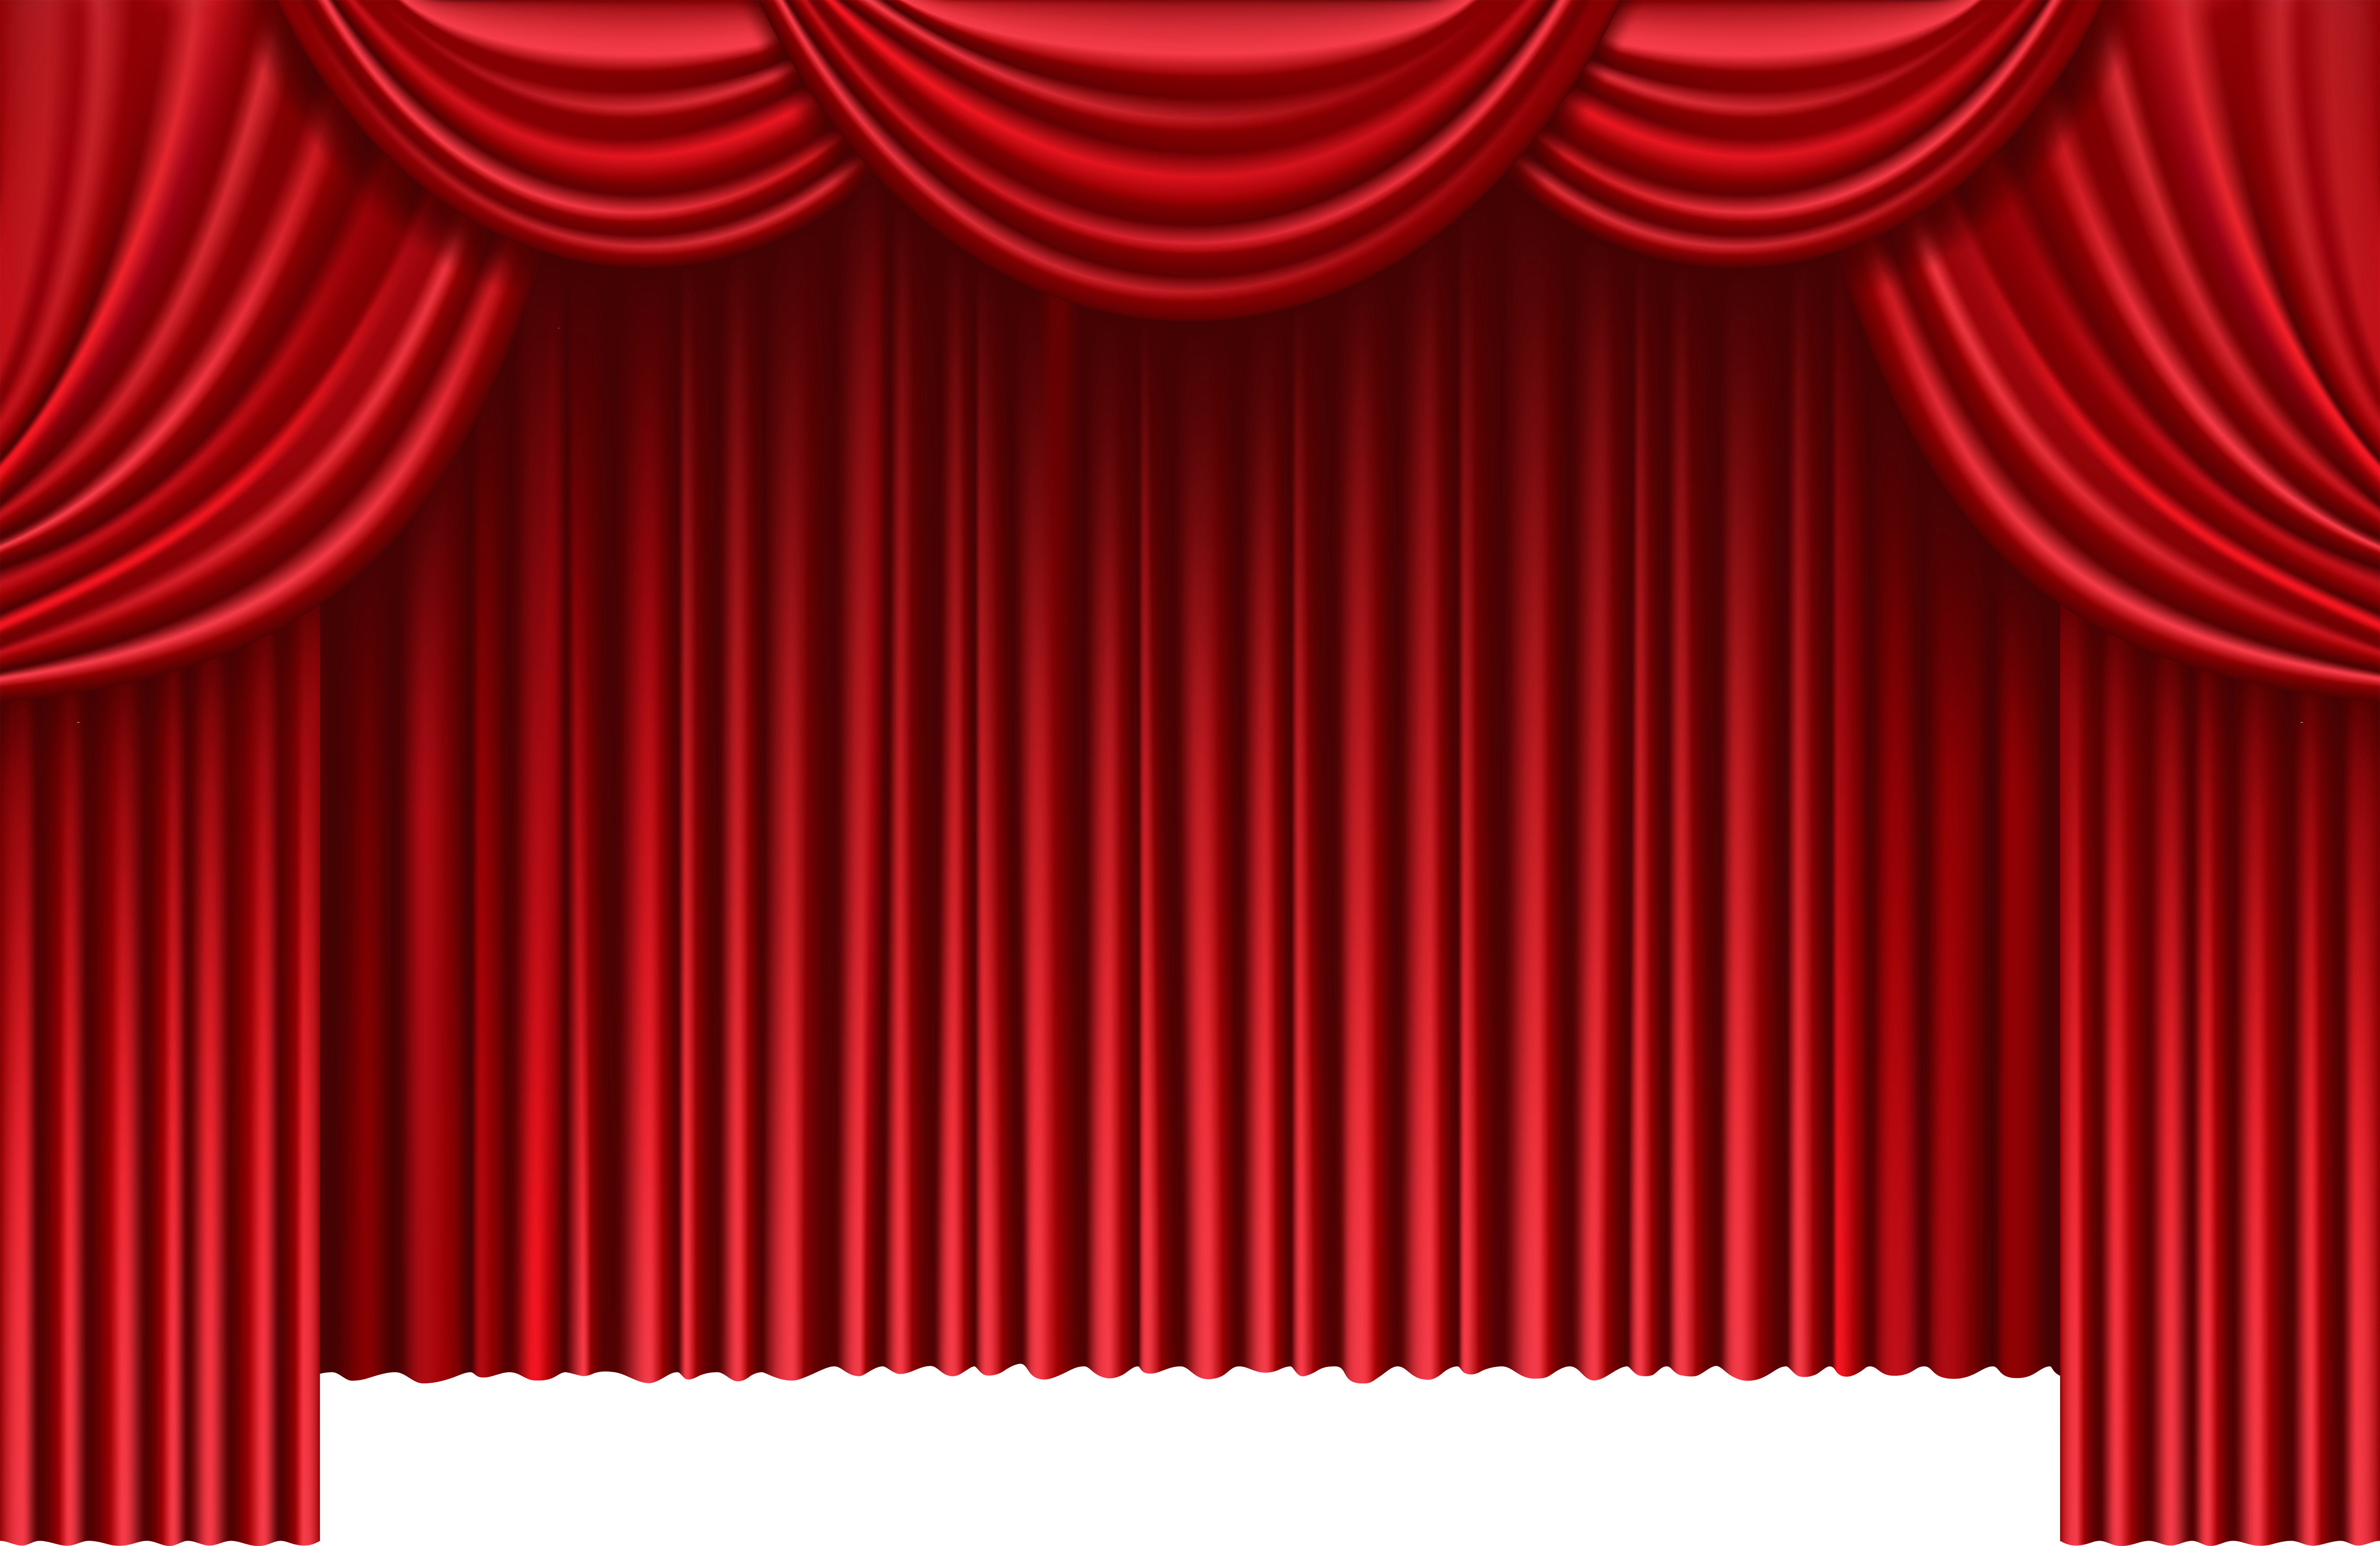 Red theater curtains png. Curtain clipart